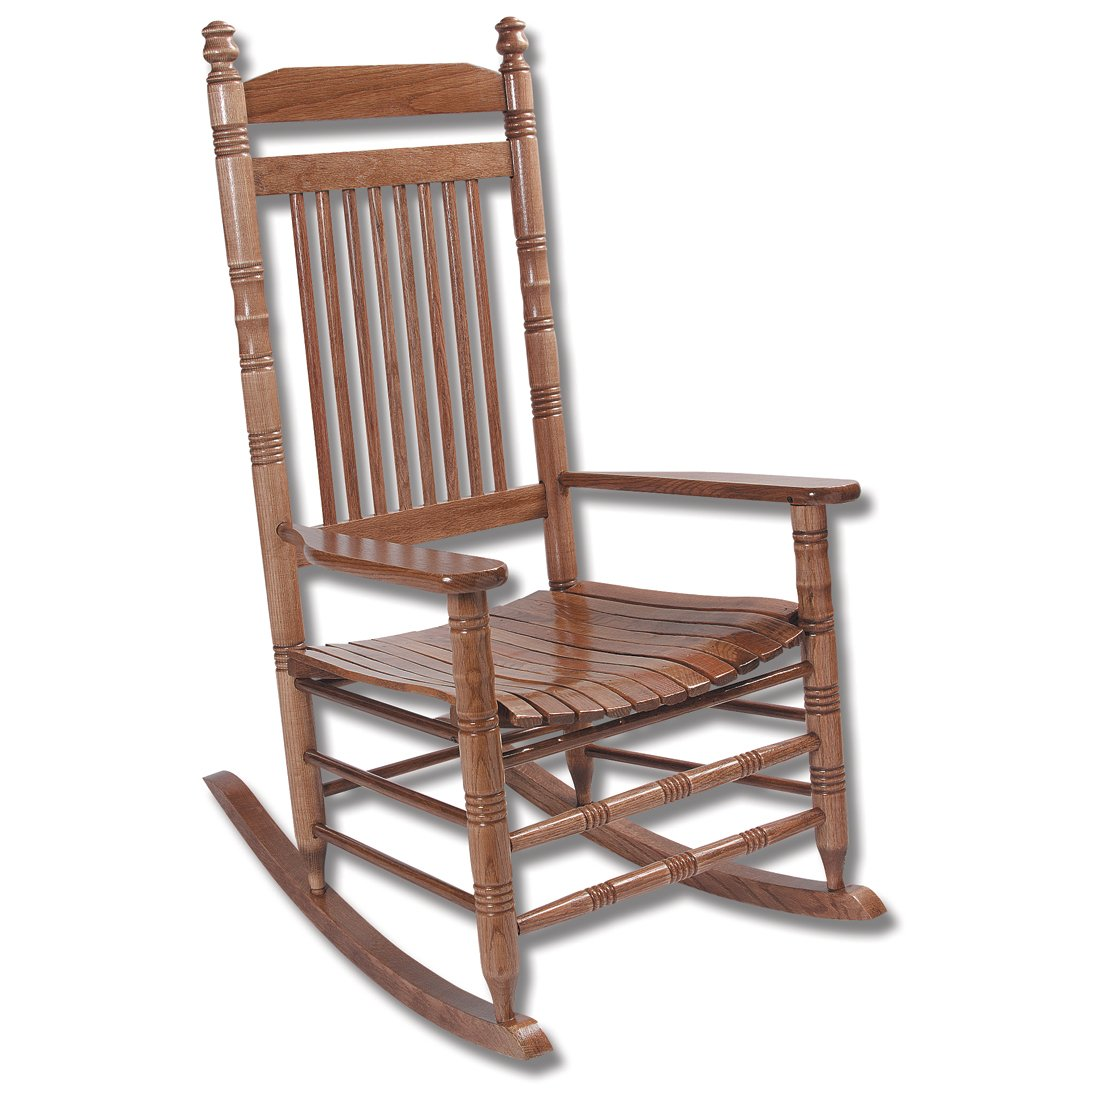 Adult Slat Rocking Chair   Hardwood | Home Furniture | Indoor Furniture | Rocking  Chairs | Cracker Barrel Old Country Store   Cracker Barrel Old Country ...